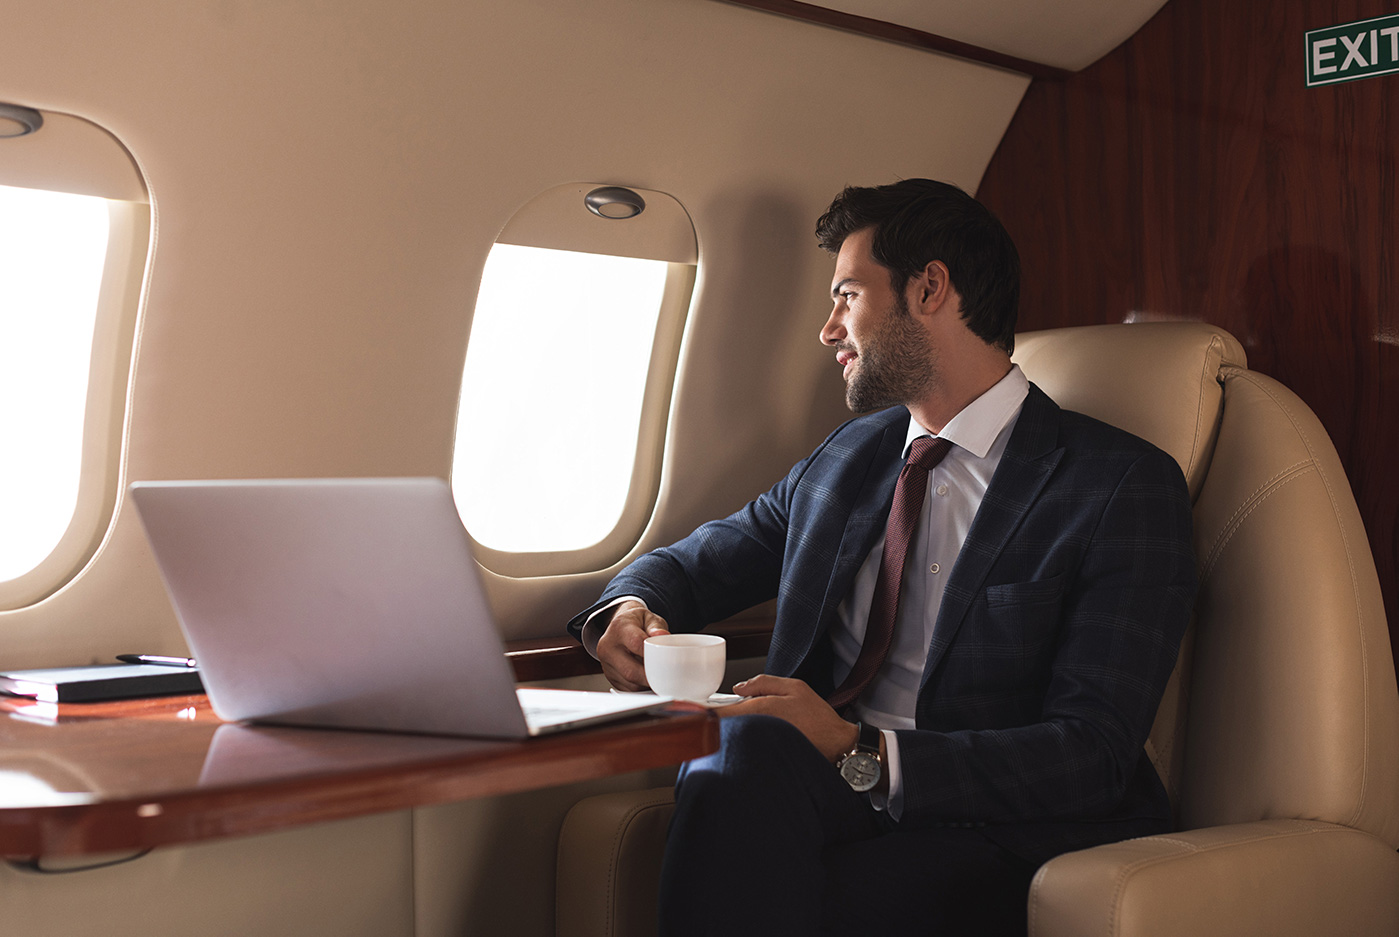 private jet benefits for the businessman looking out window on jet